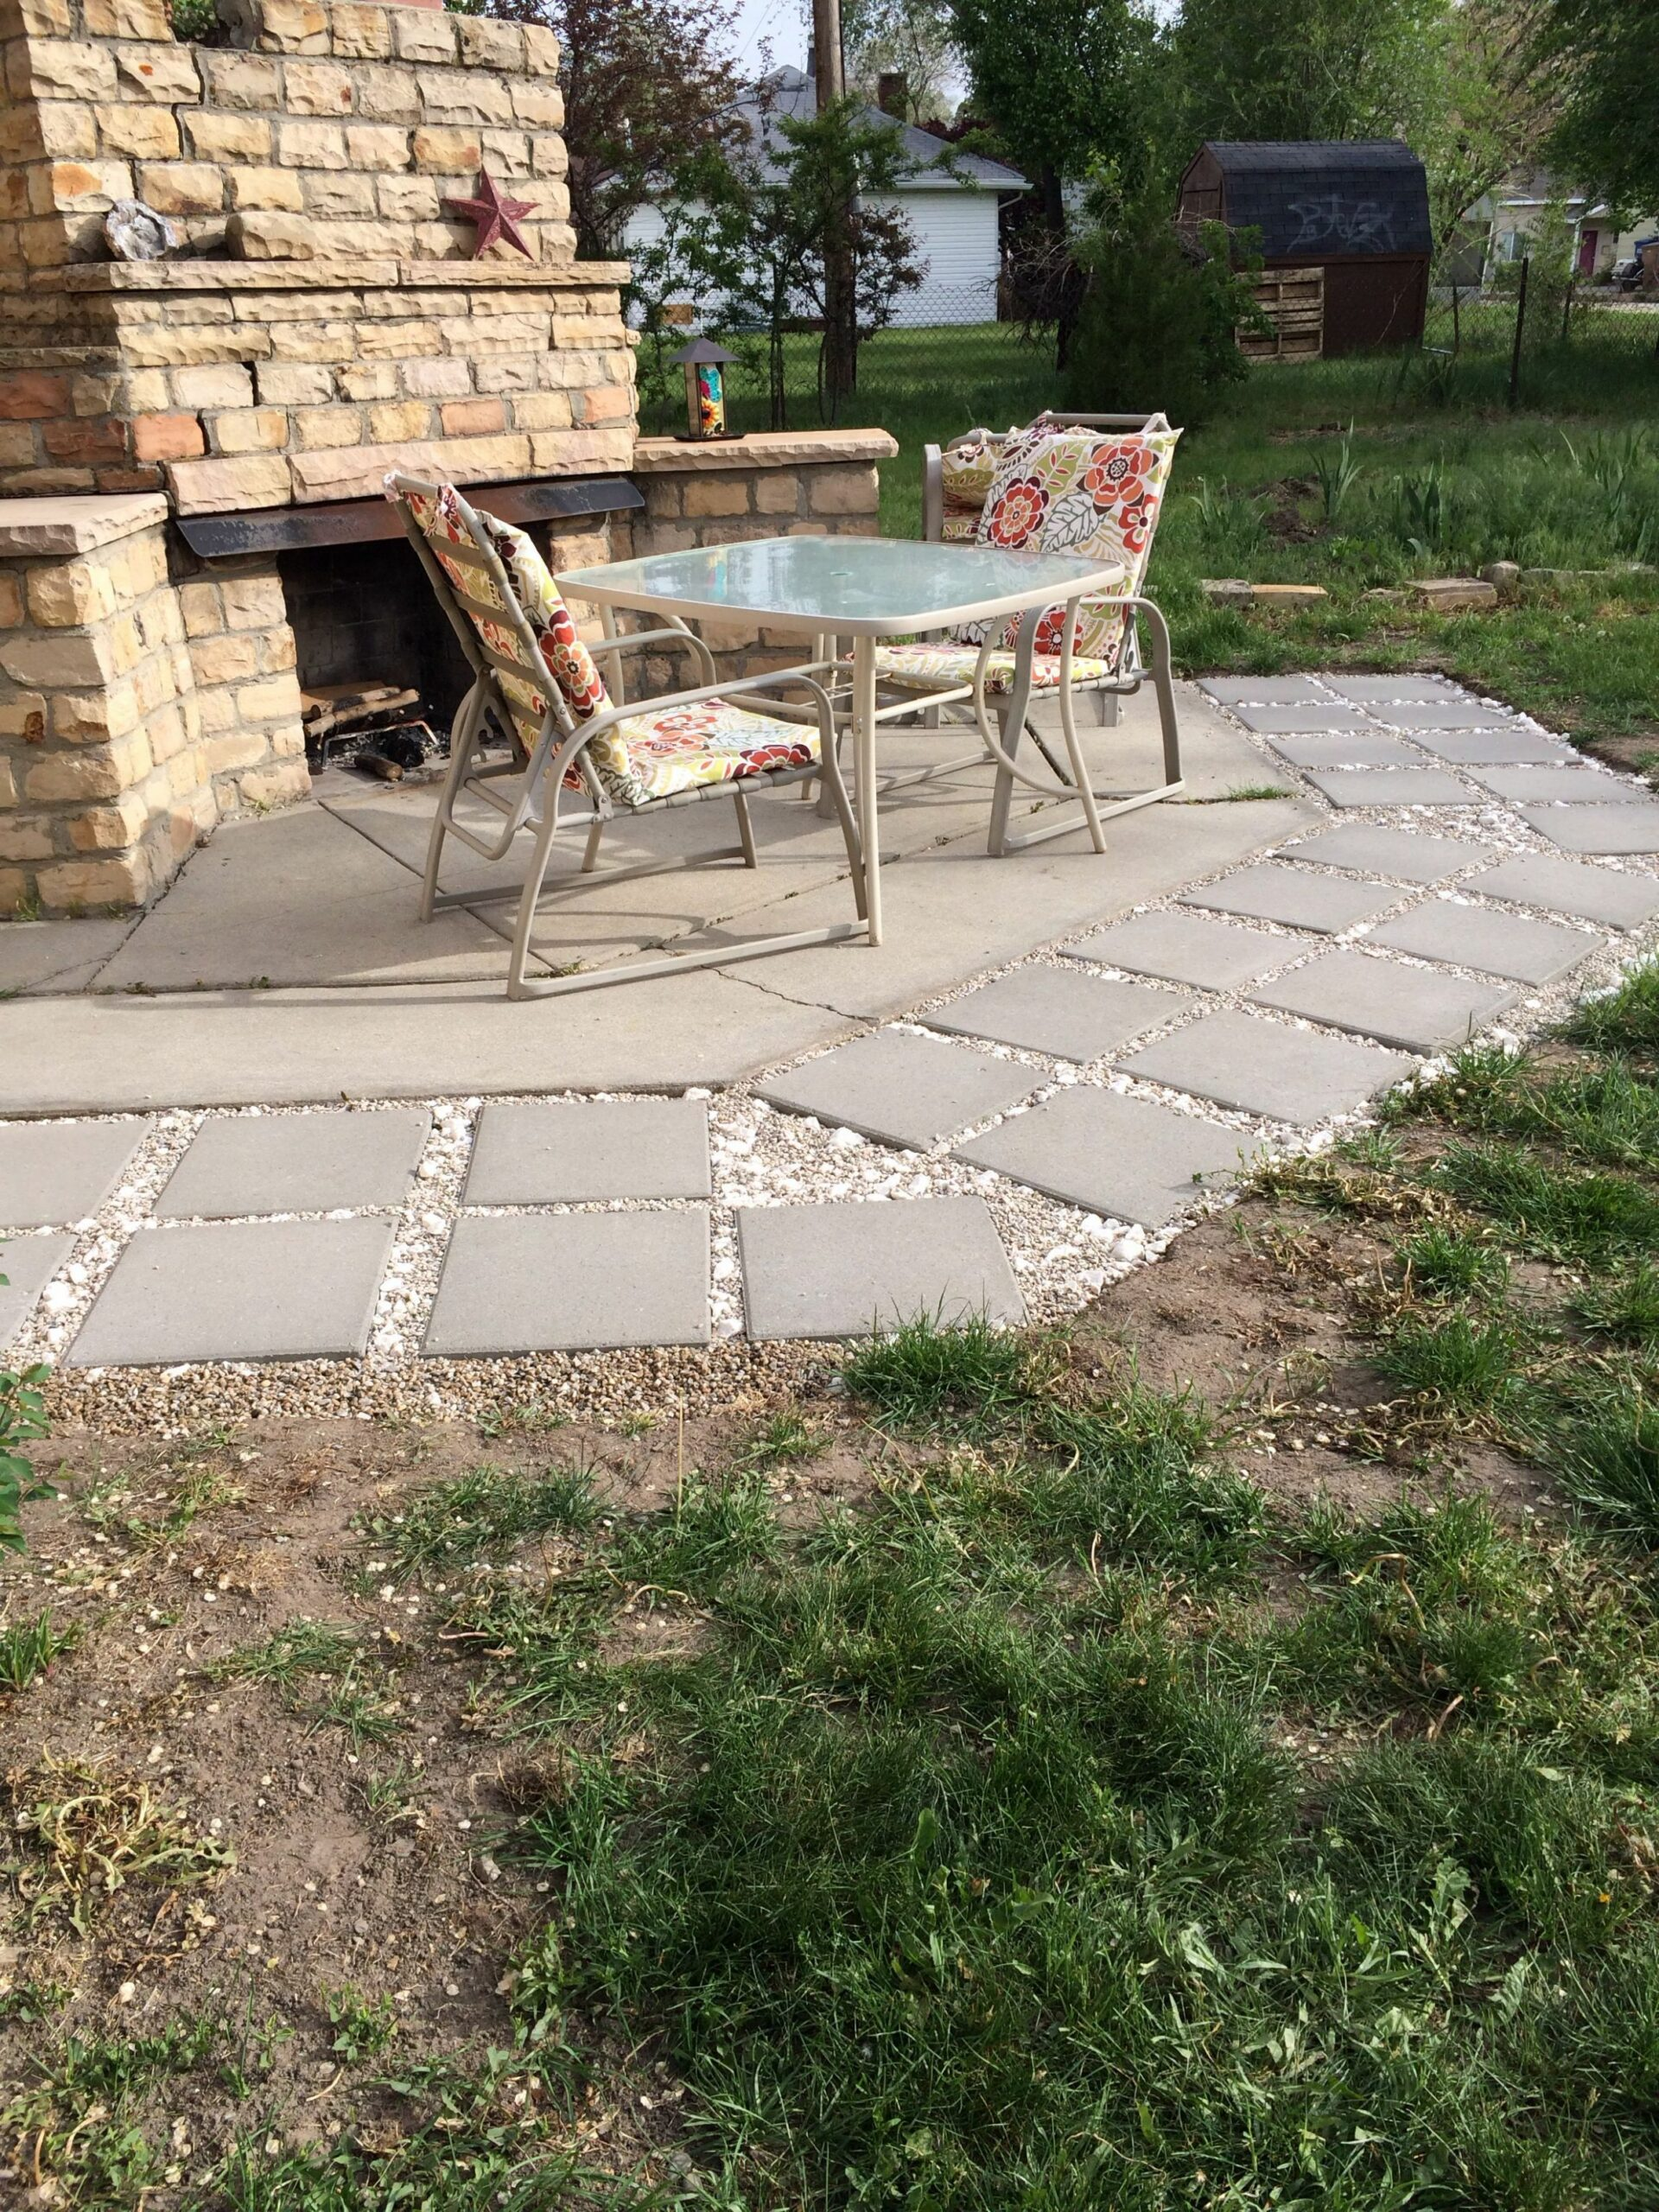 Extend ur patio without using concrete - super easy! All u need ..